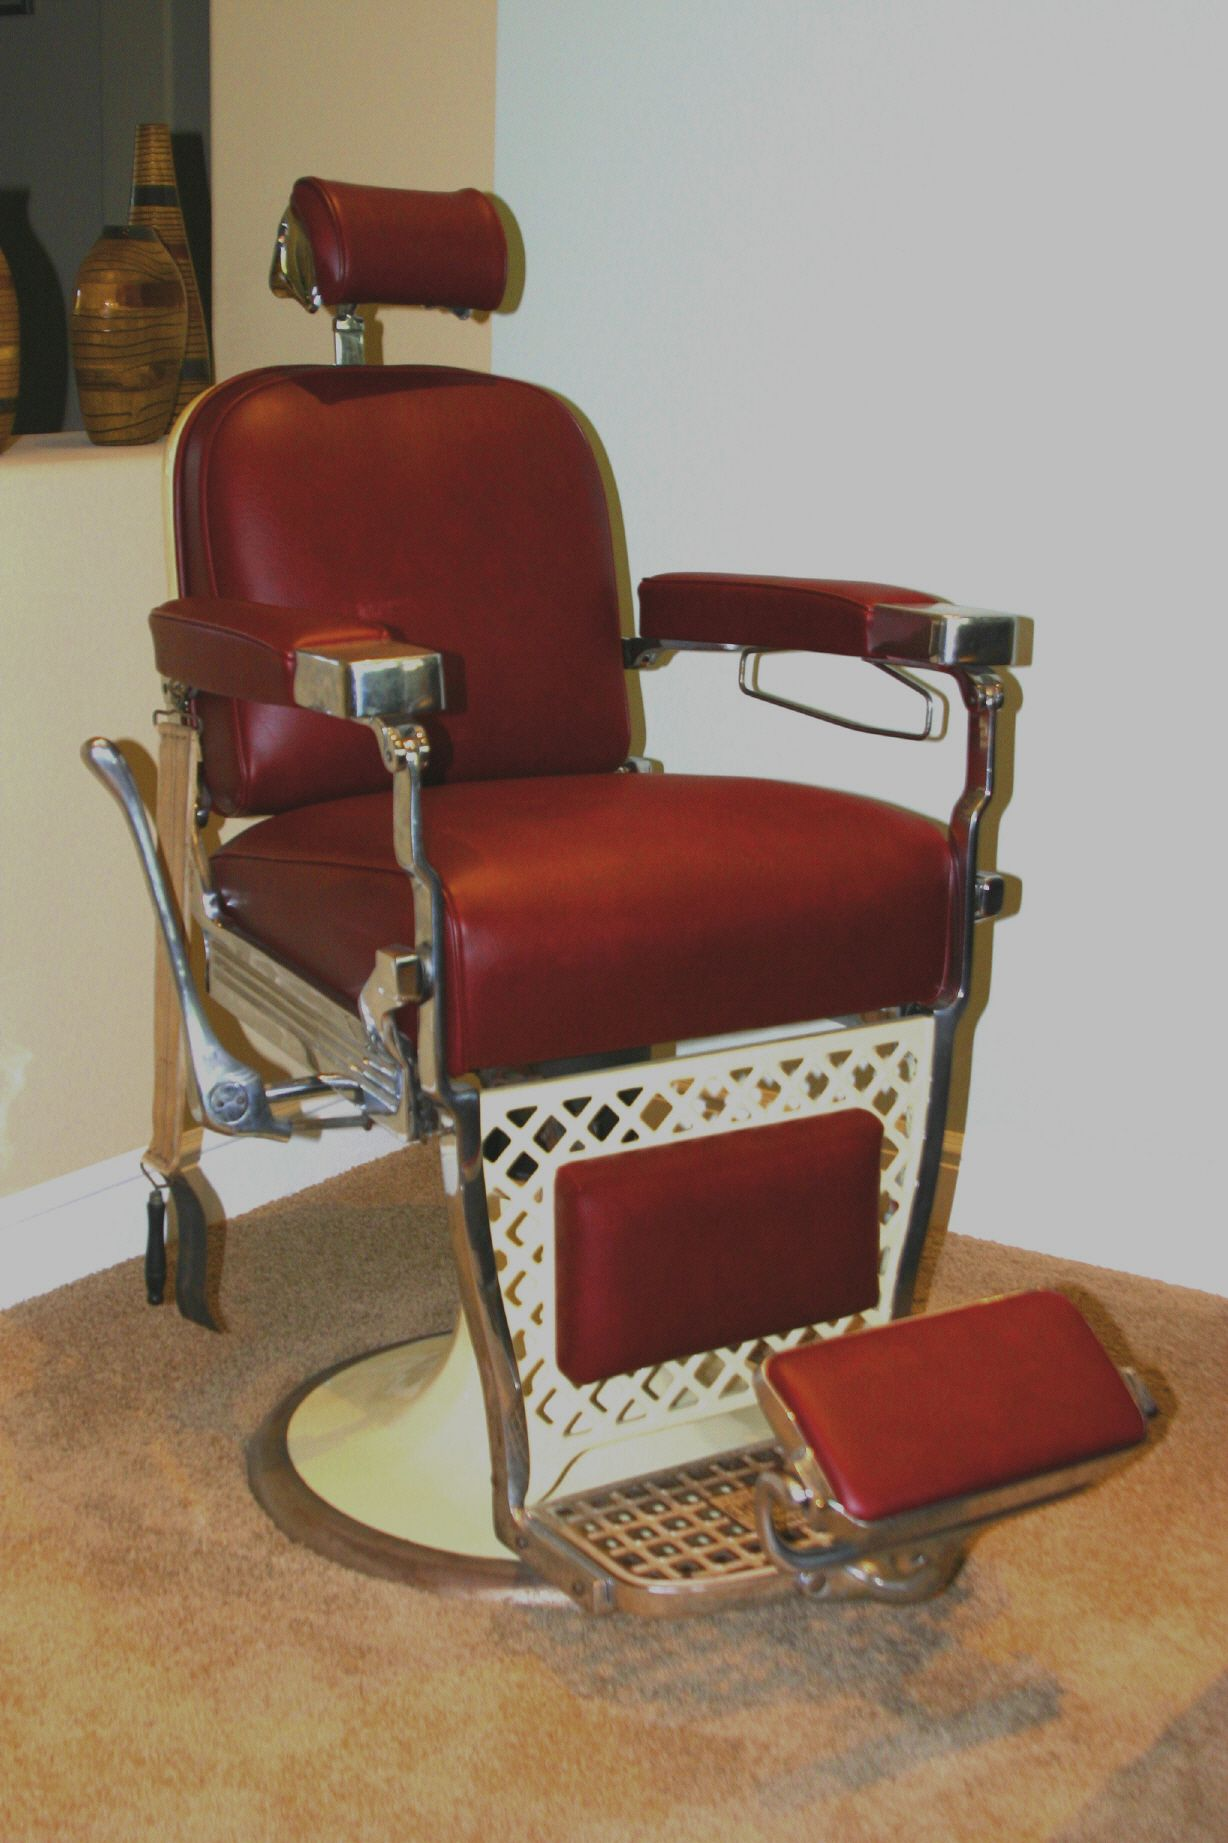 Antique barber chairs koken - Antique Barber Chair Http Coastersfurniture Org Shabby Chic Furniture